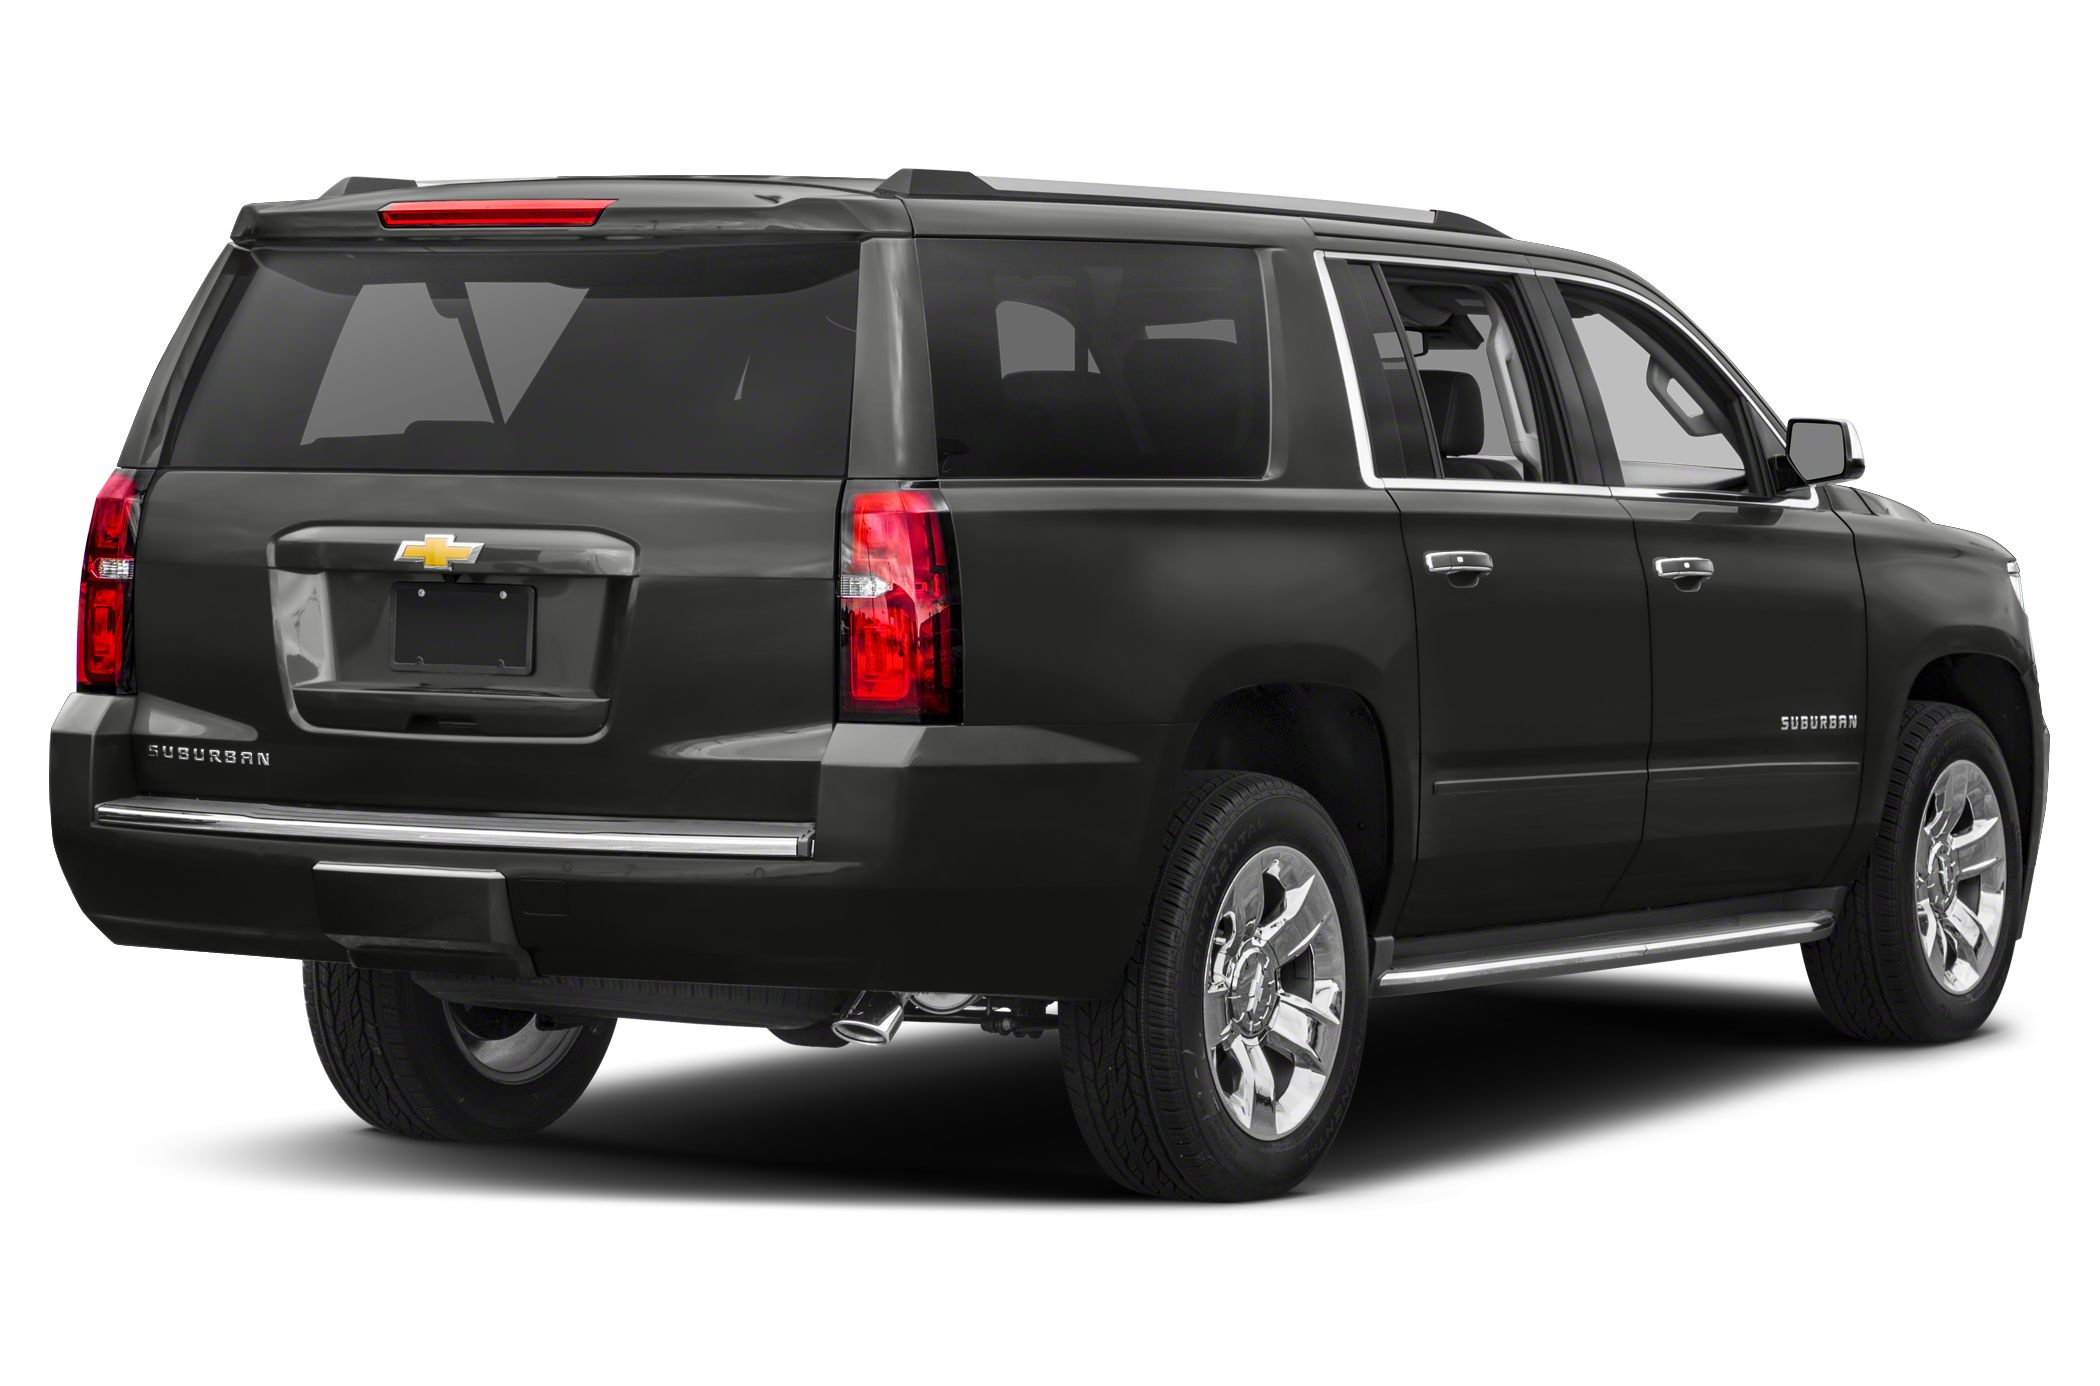 2016 chevrolet suburban styles features highlights. Black Bedroom Furniture Sets. Home Design Ideas